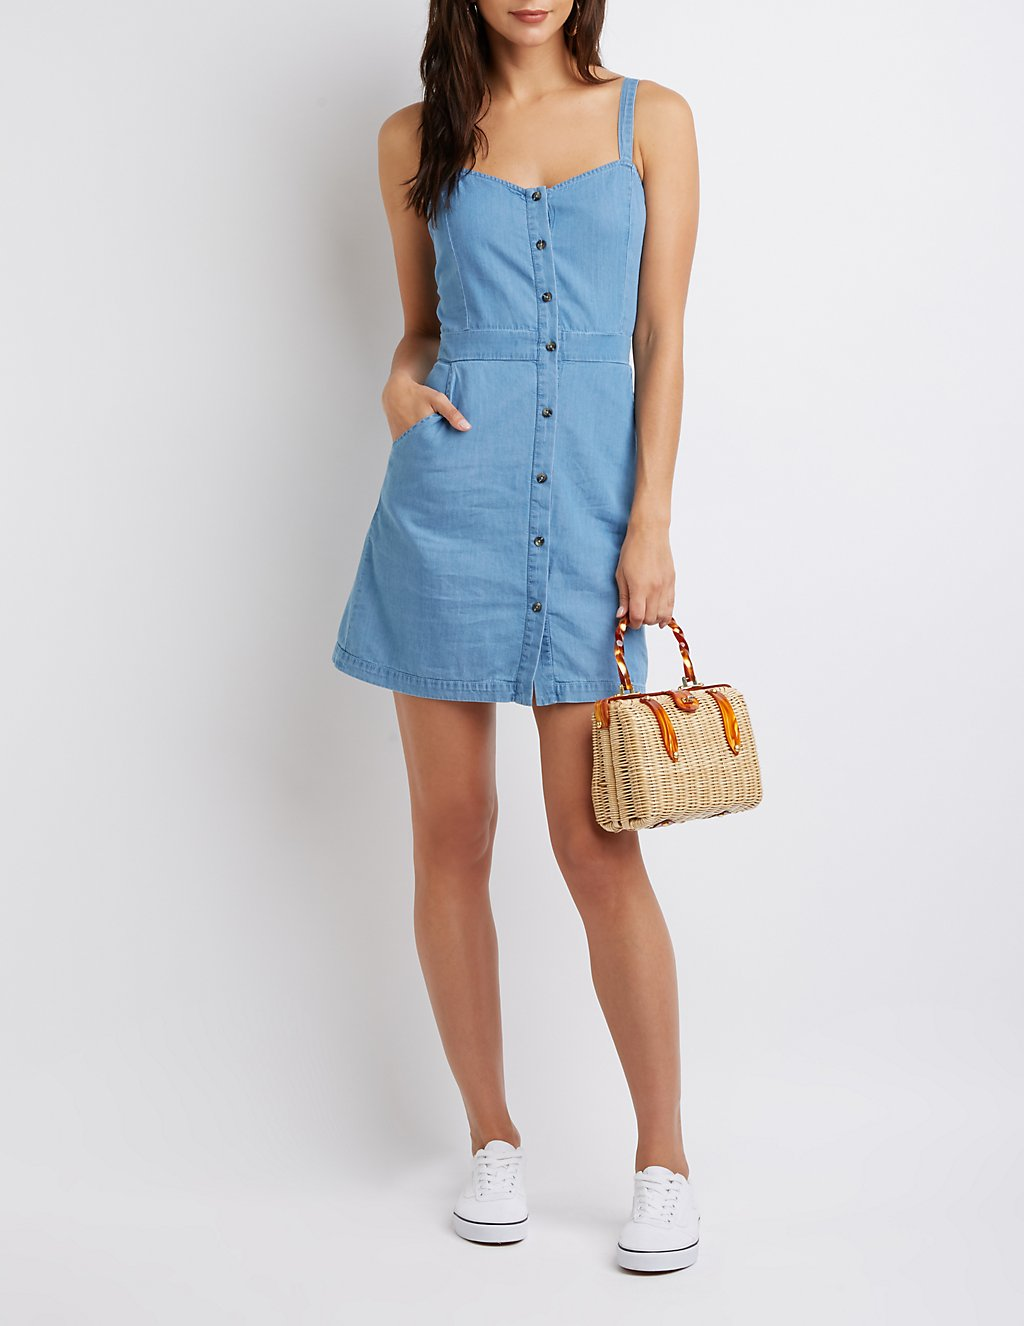 Charlotte Russe Chambray Button Up dress